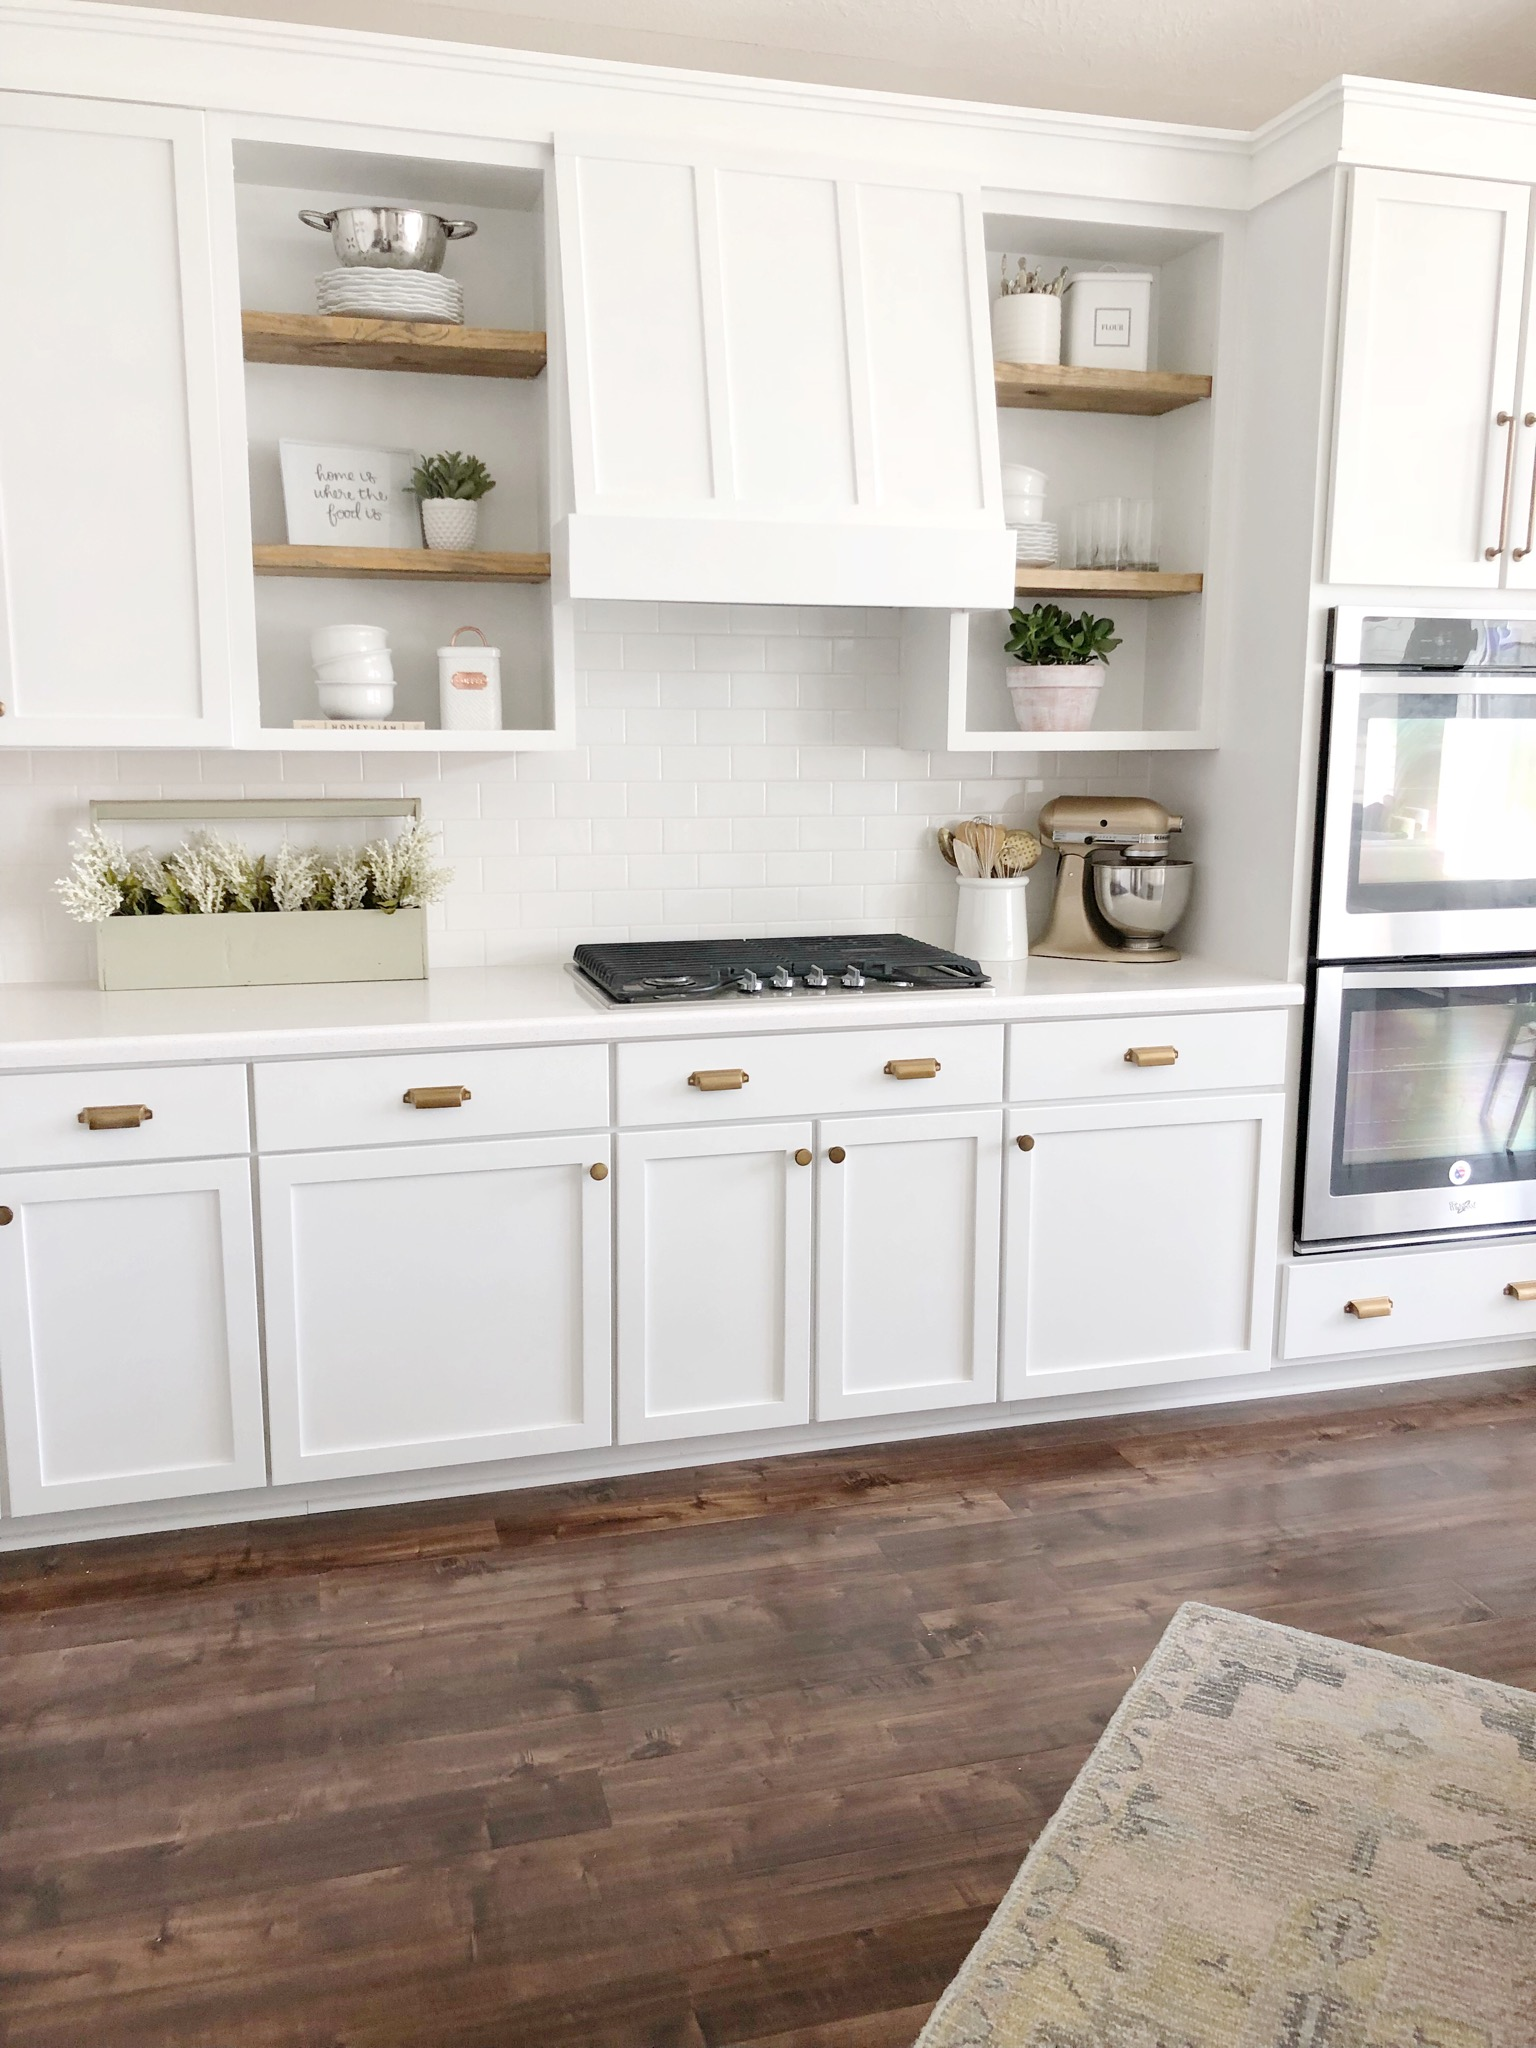 Diy Kitchen Vent Hood And Cabinet Molding The Blooming Nest